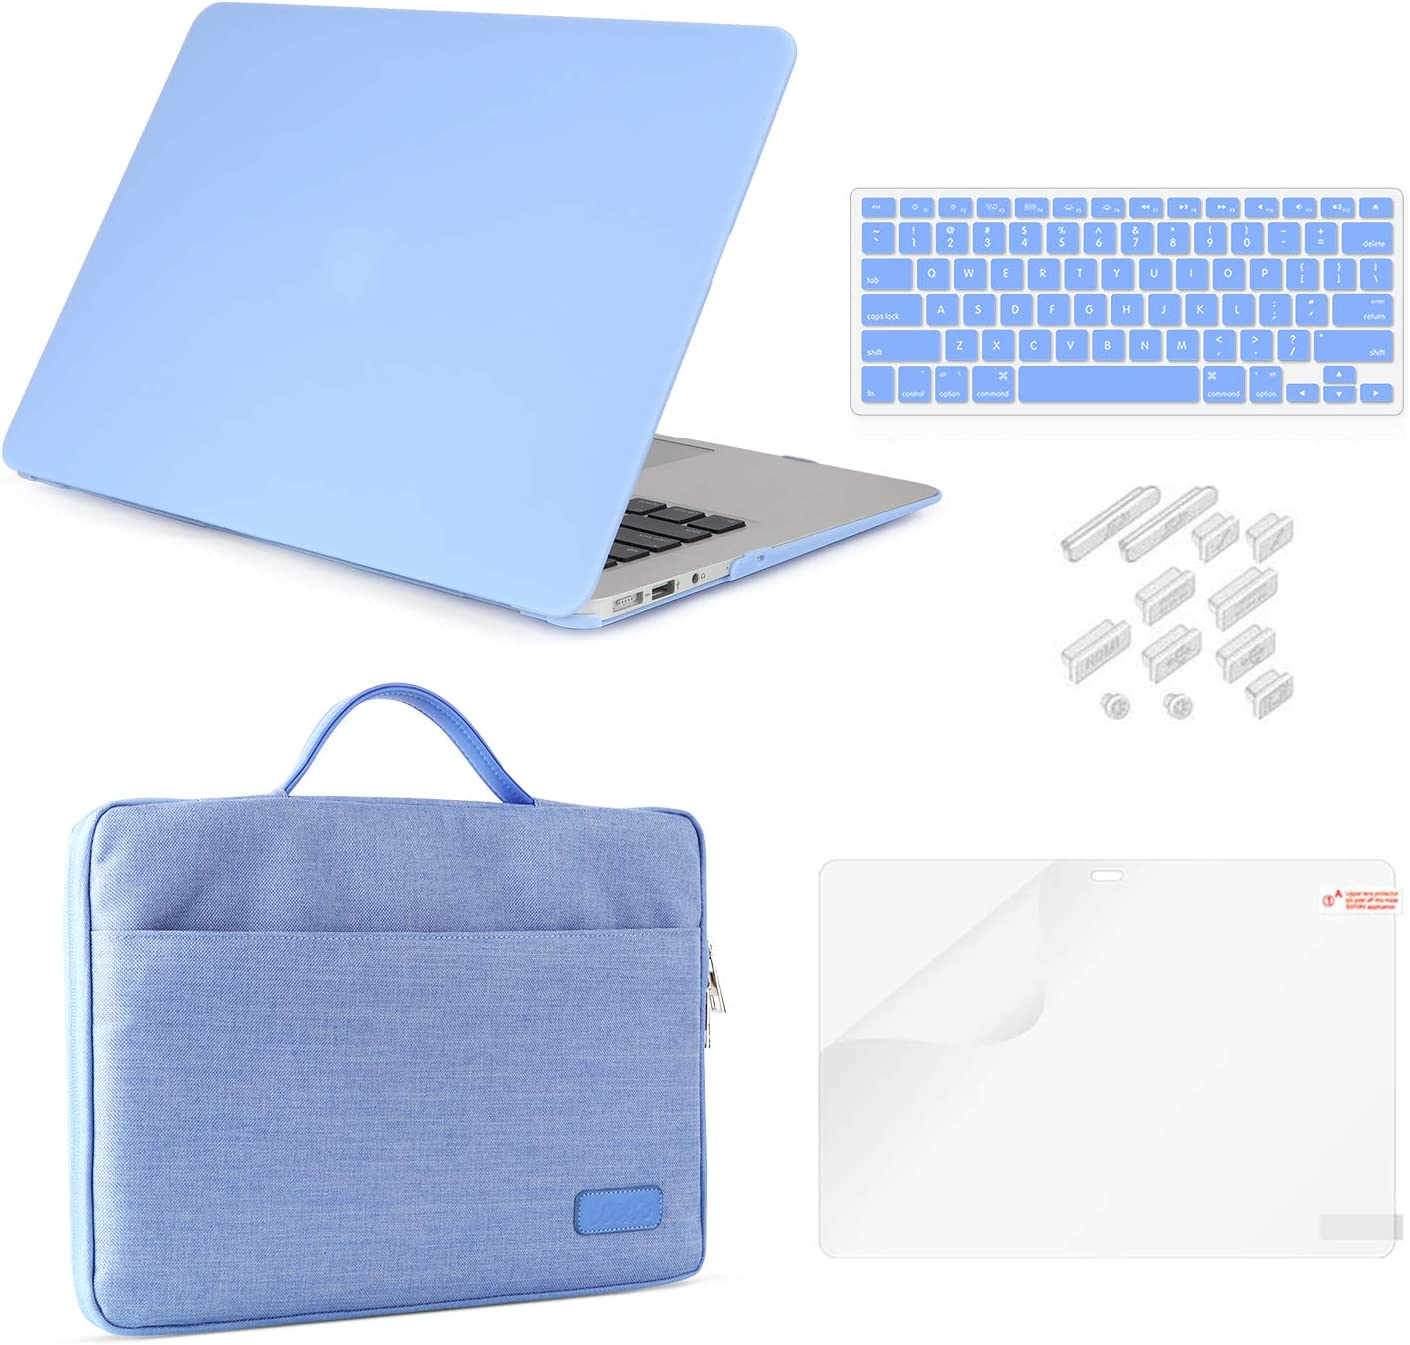 MacBook Air 11 Inch Case Bundle 5 in 1,iCasso Ultra Slim Plastic Hard Cover with Canvas Sleeve,Screen Protector,Keyboard Cover & Dust Plug for MacBook Air 11 Inch Model A1370/A1465 - Serenity Blue